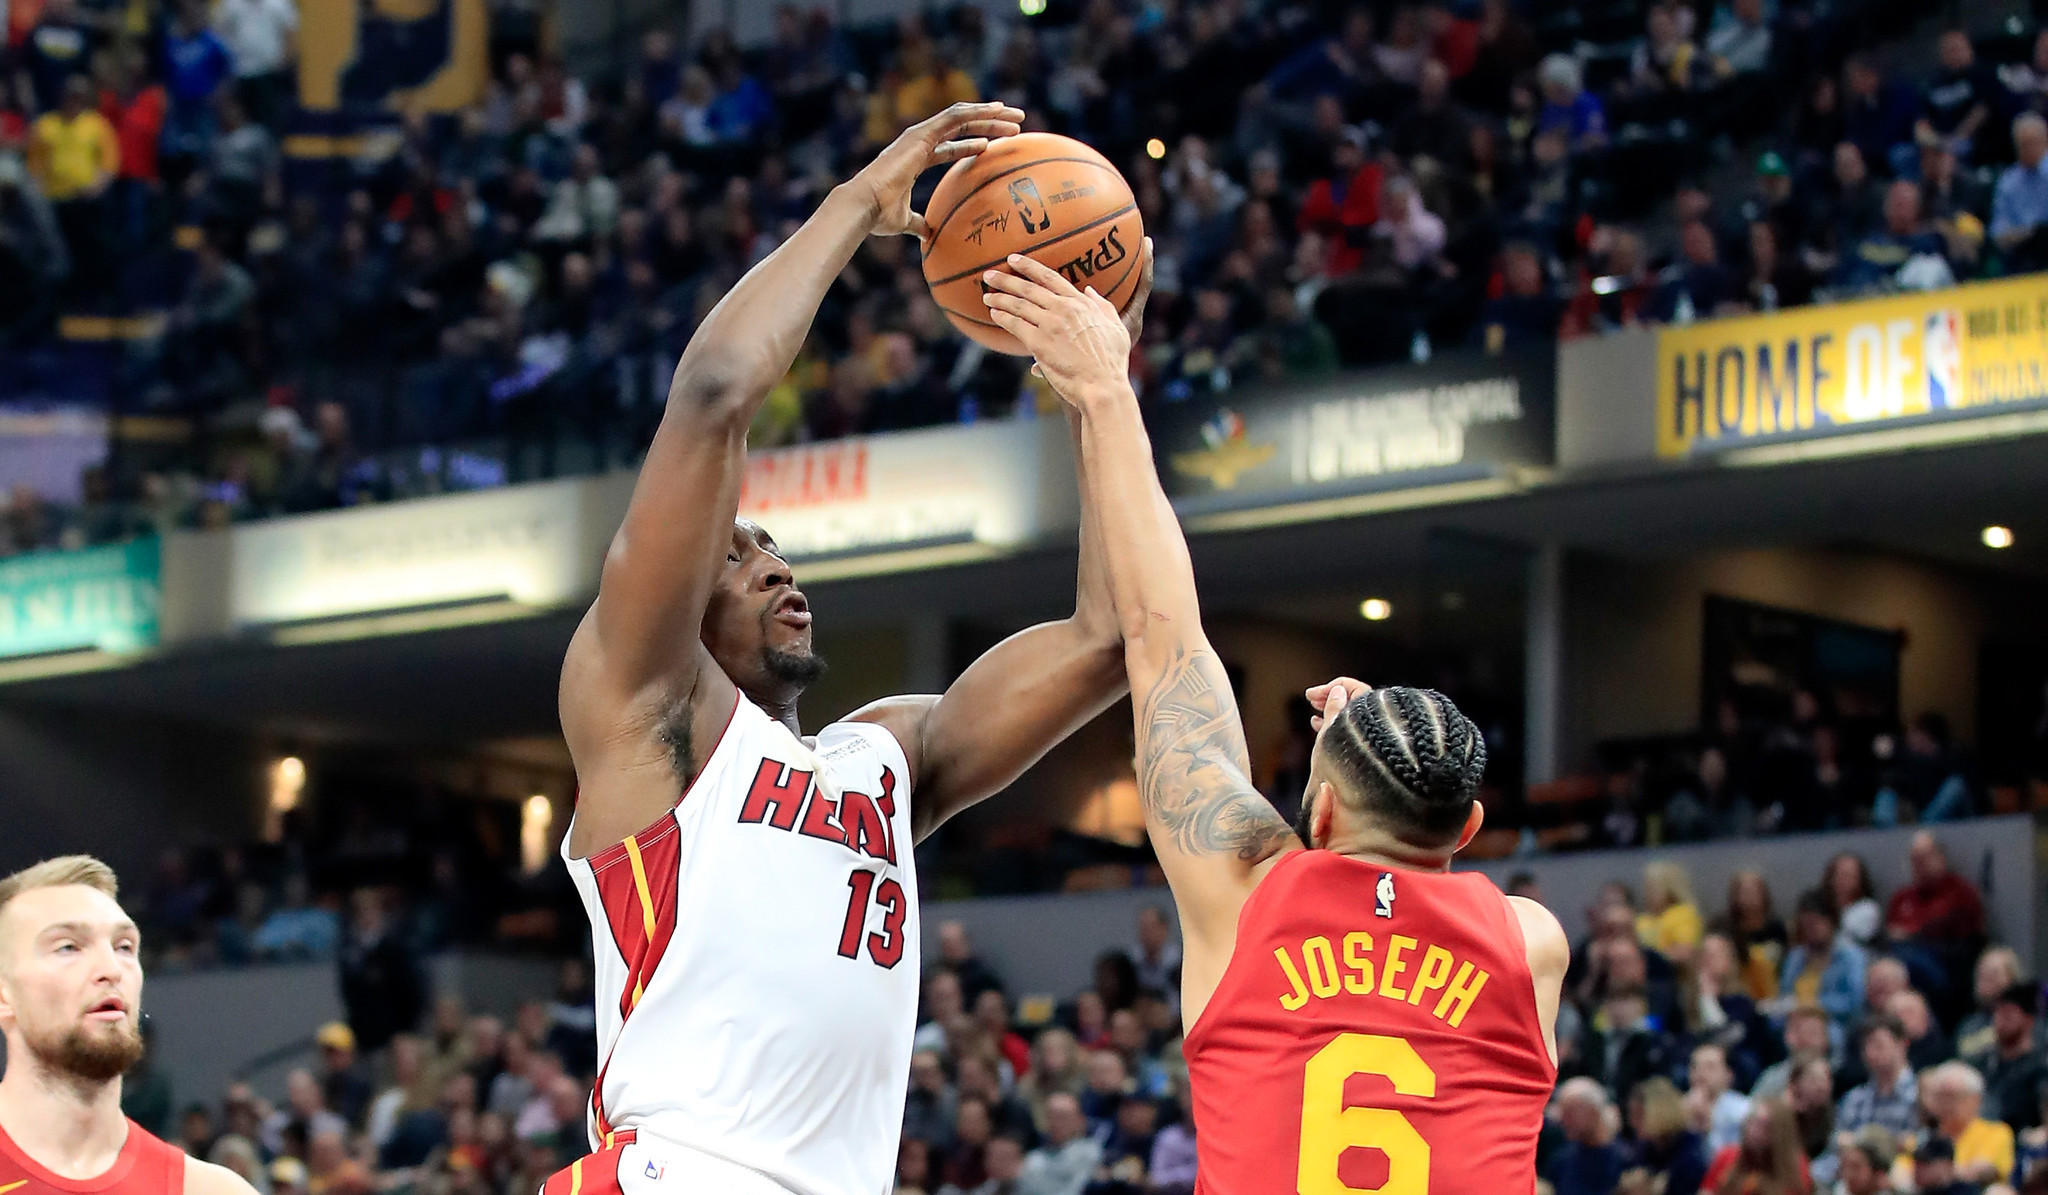 Sfl-photos-heat-at-pacers-20181116